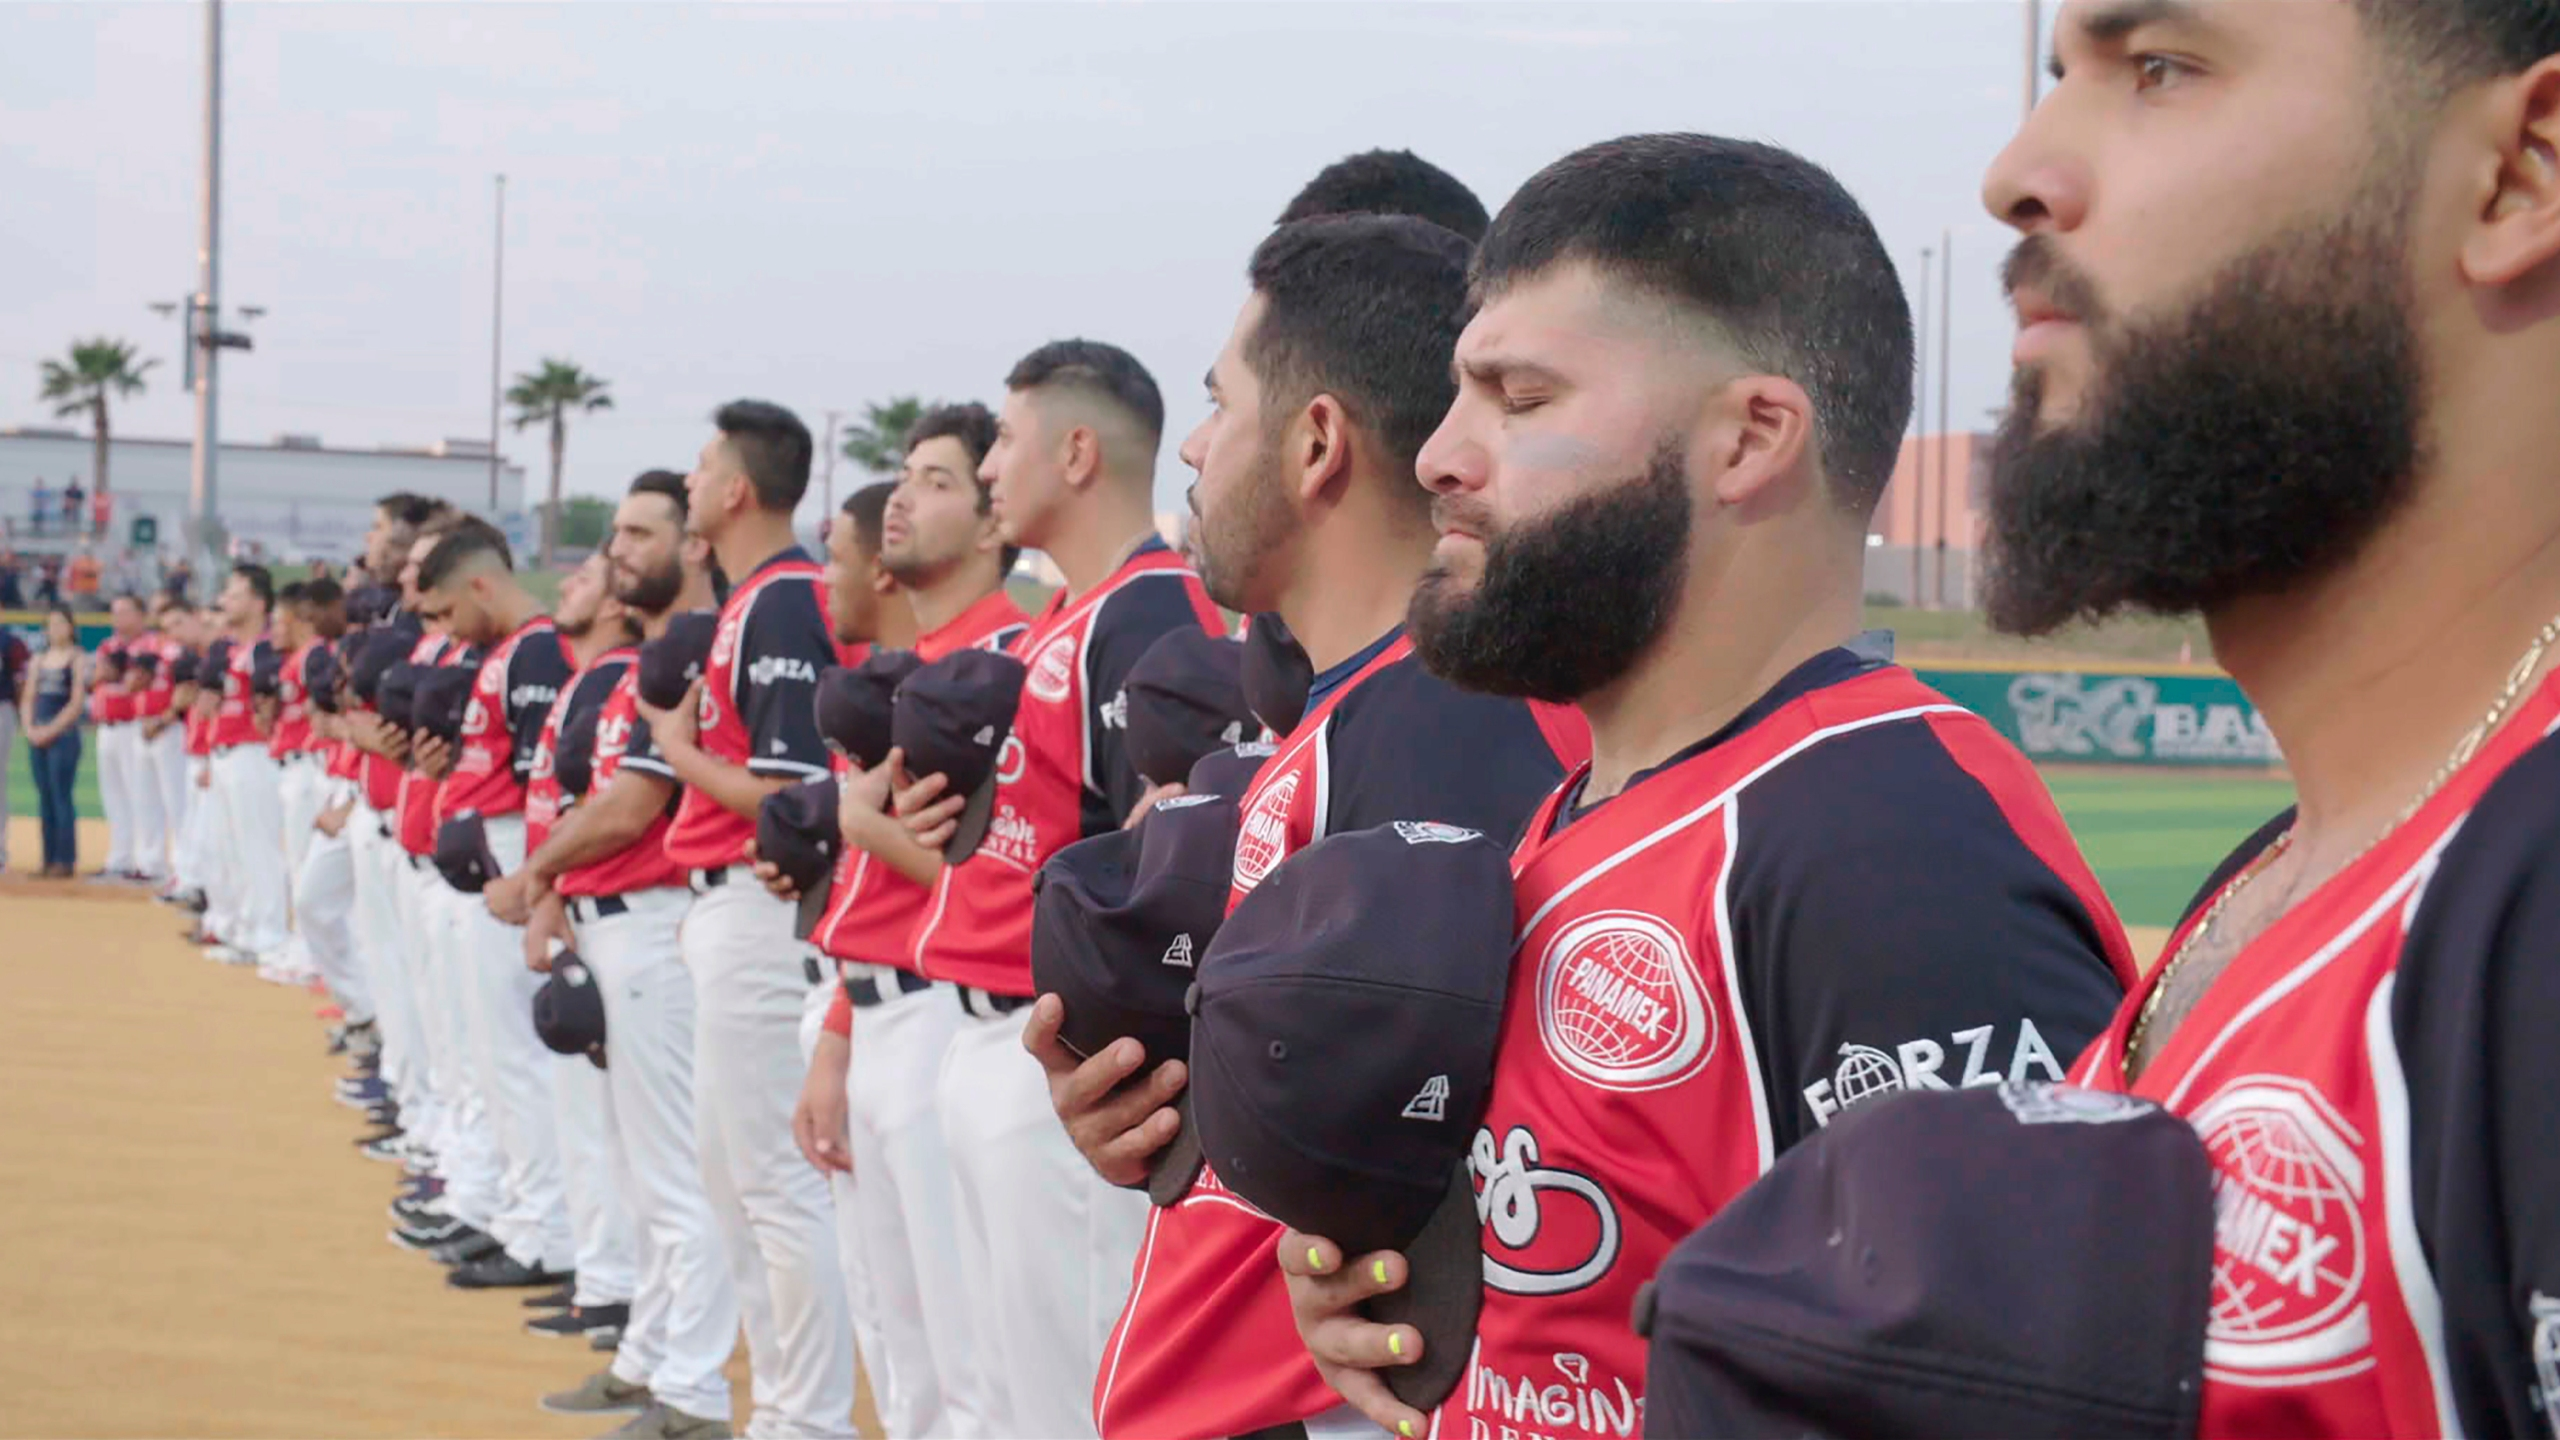 "Members of the Tecolotes de los Dos Laredo, a binational professional baseball team with home stadiums in Nuevo Laredo, Mexico, and Laredo, Texas, stand for the U.S. National Anthem before a game in 2019 in Laredo, Texas in a scene from ""Bad Hombres."" The Showtime documentary follows this AAA Mexican League baseball team that plays on both sides of the U.S.-Mexico border amid the tension around migration, divisive politics, and environmental concerns. (Showtime via AP)"